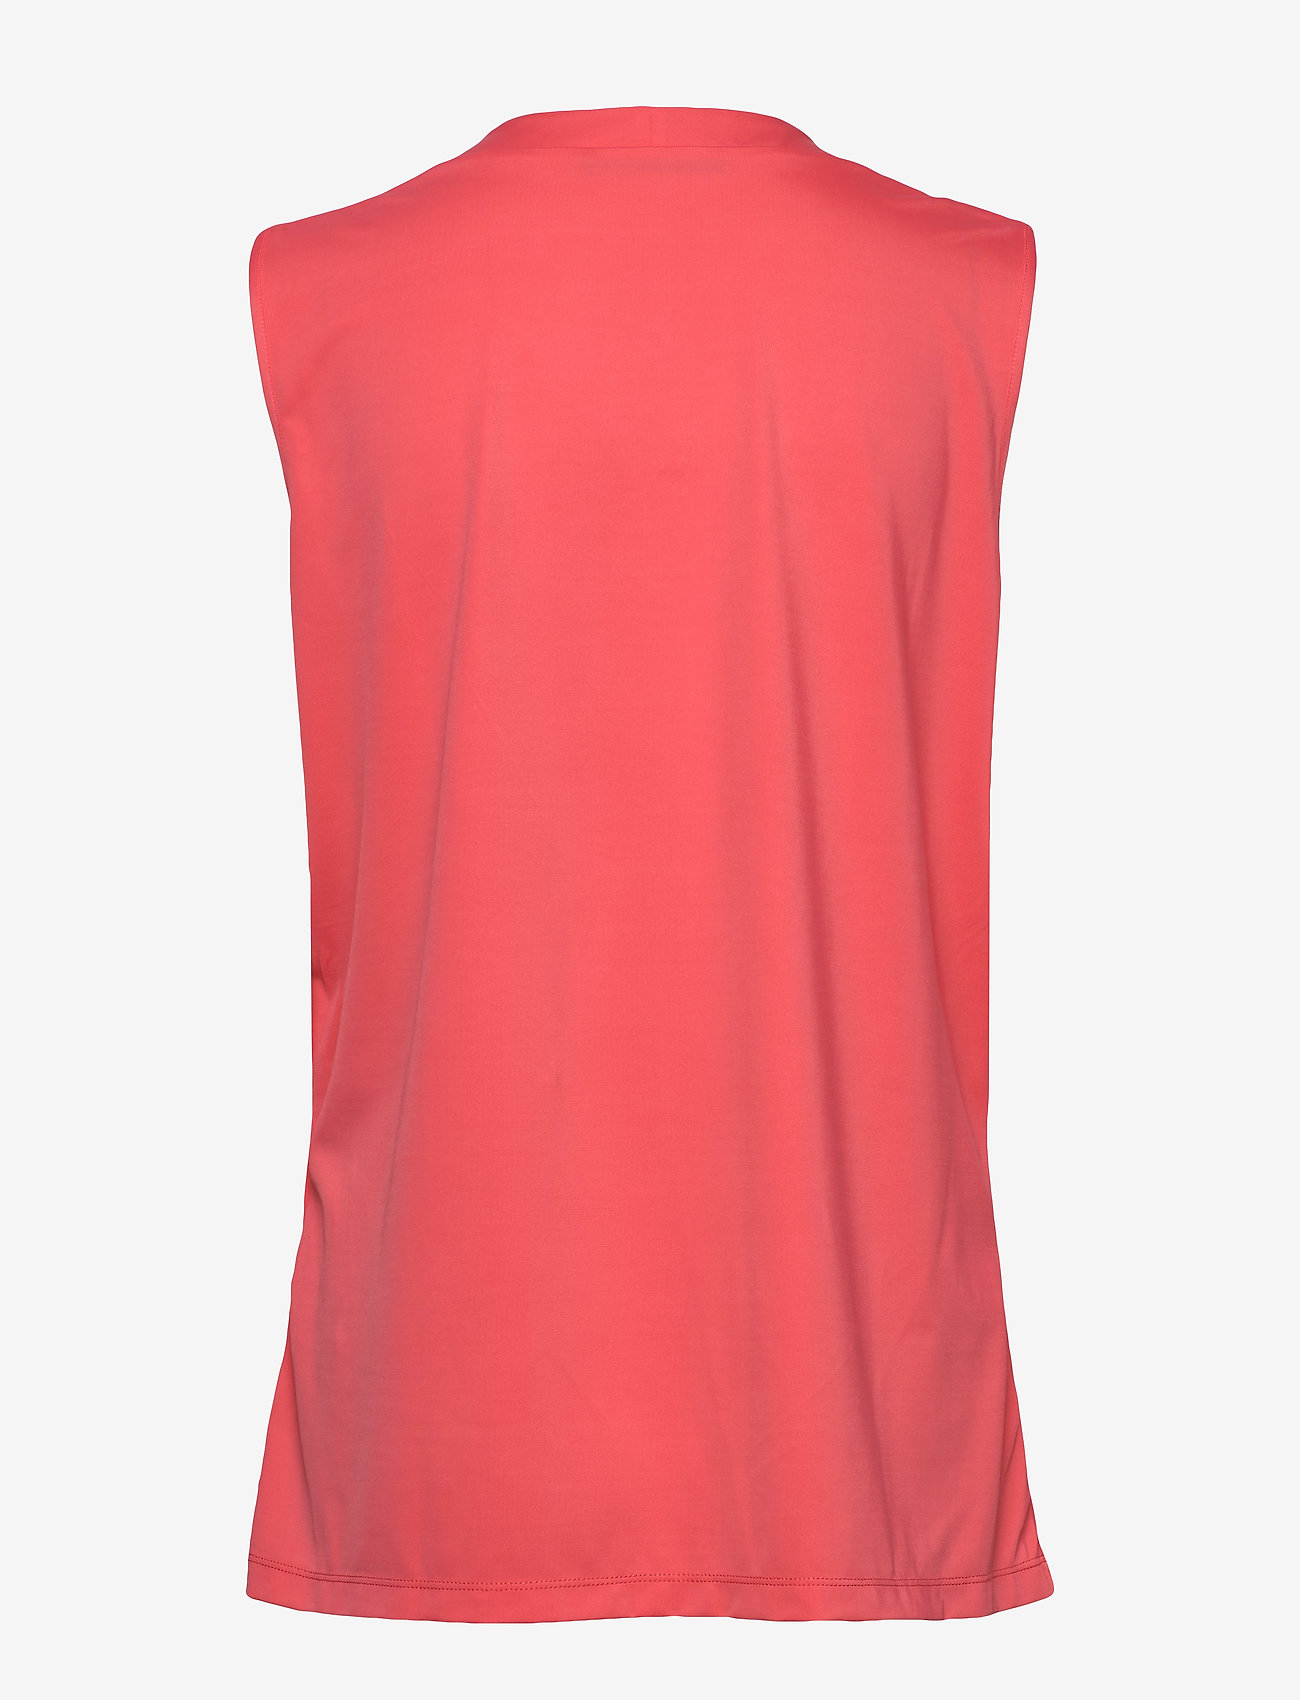 Shirt Short Without Sleeve (Coral Red) (25.99 €) - Betty Barclay QLMRh